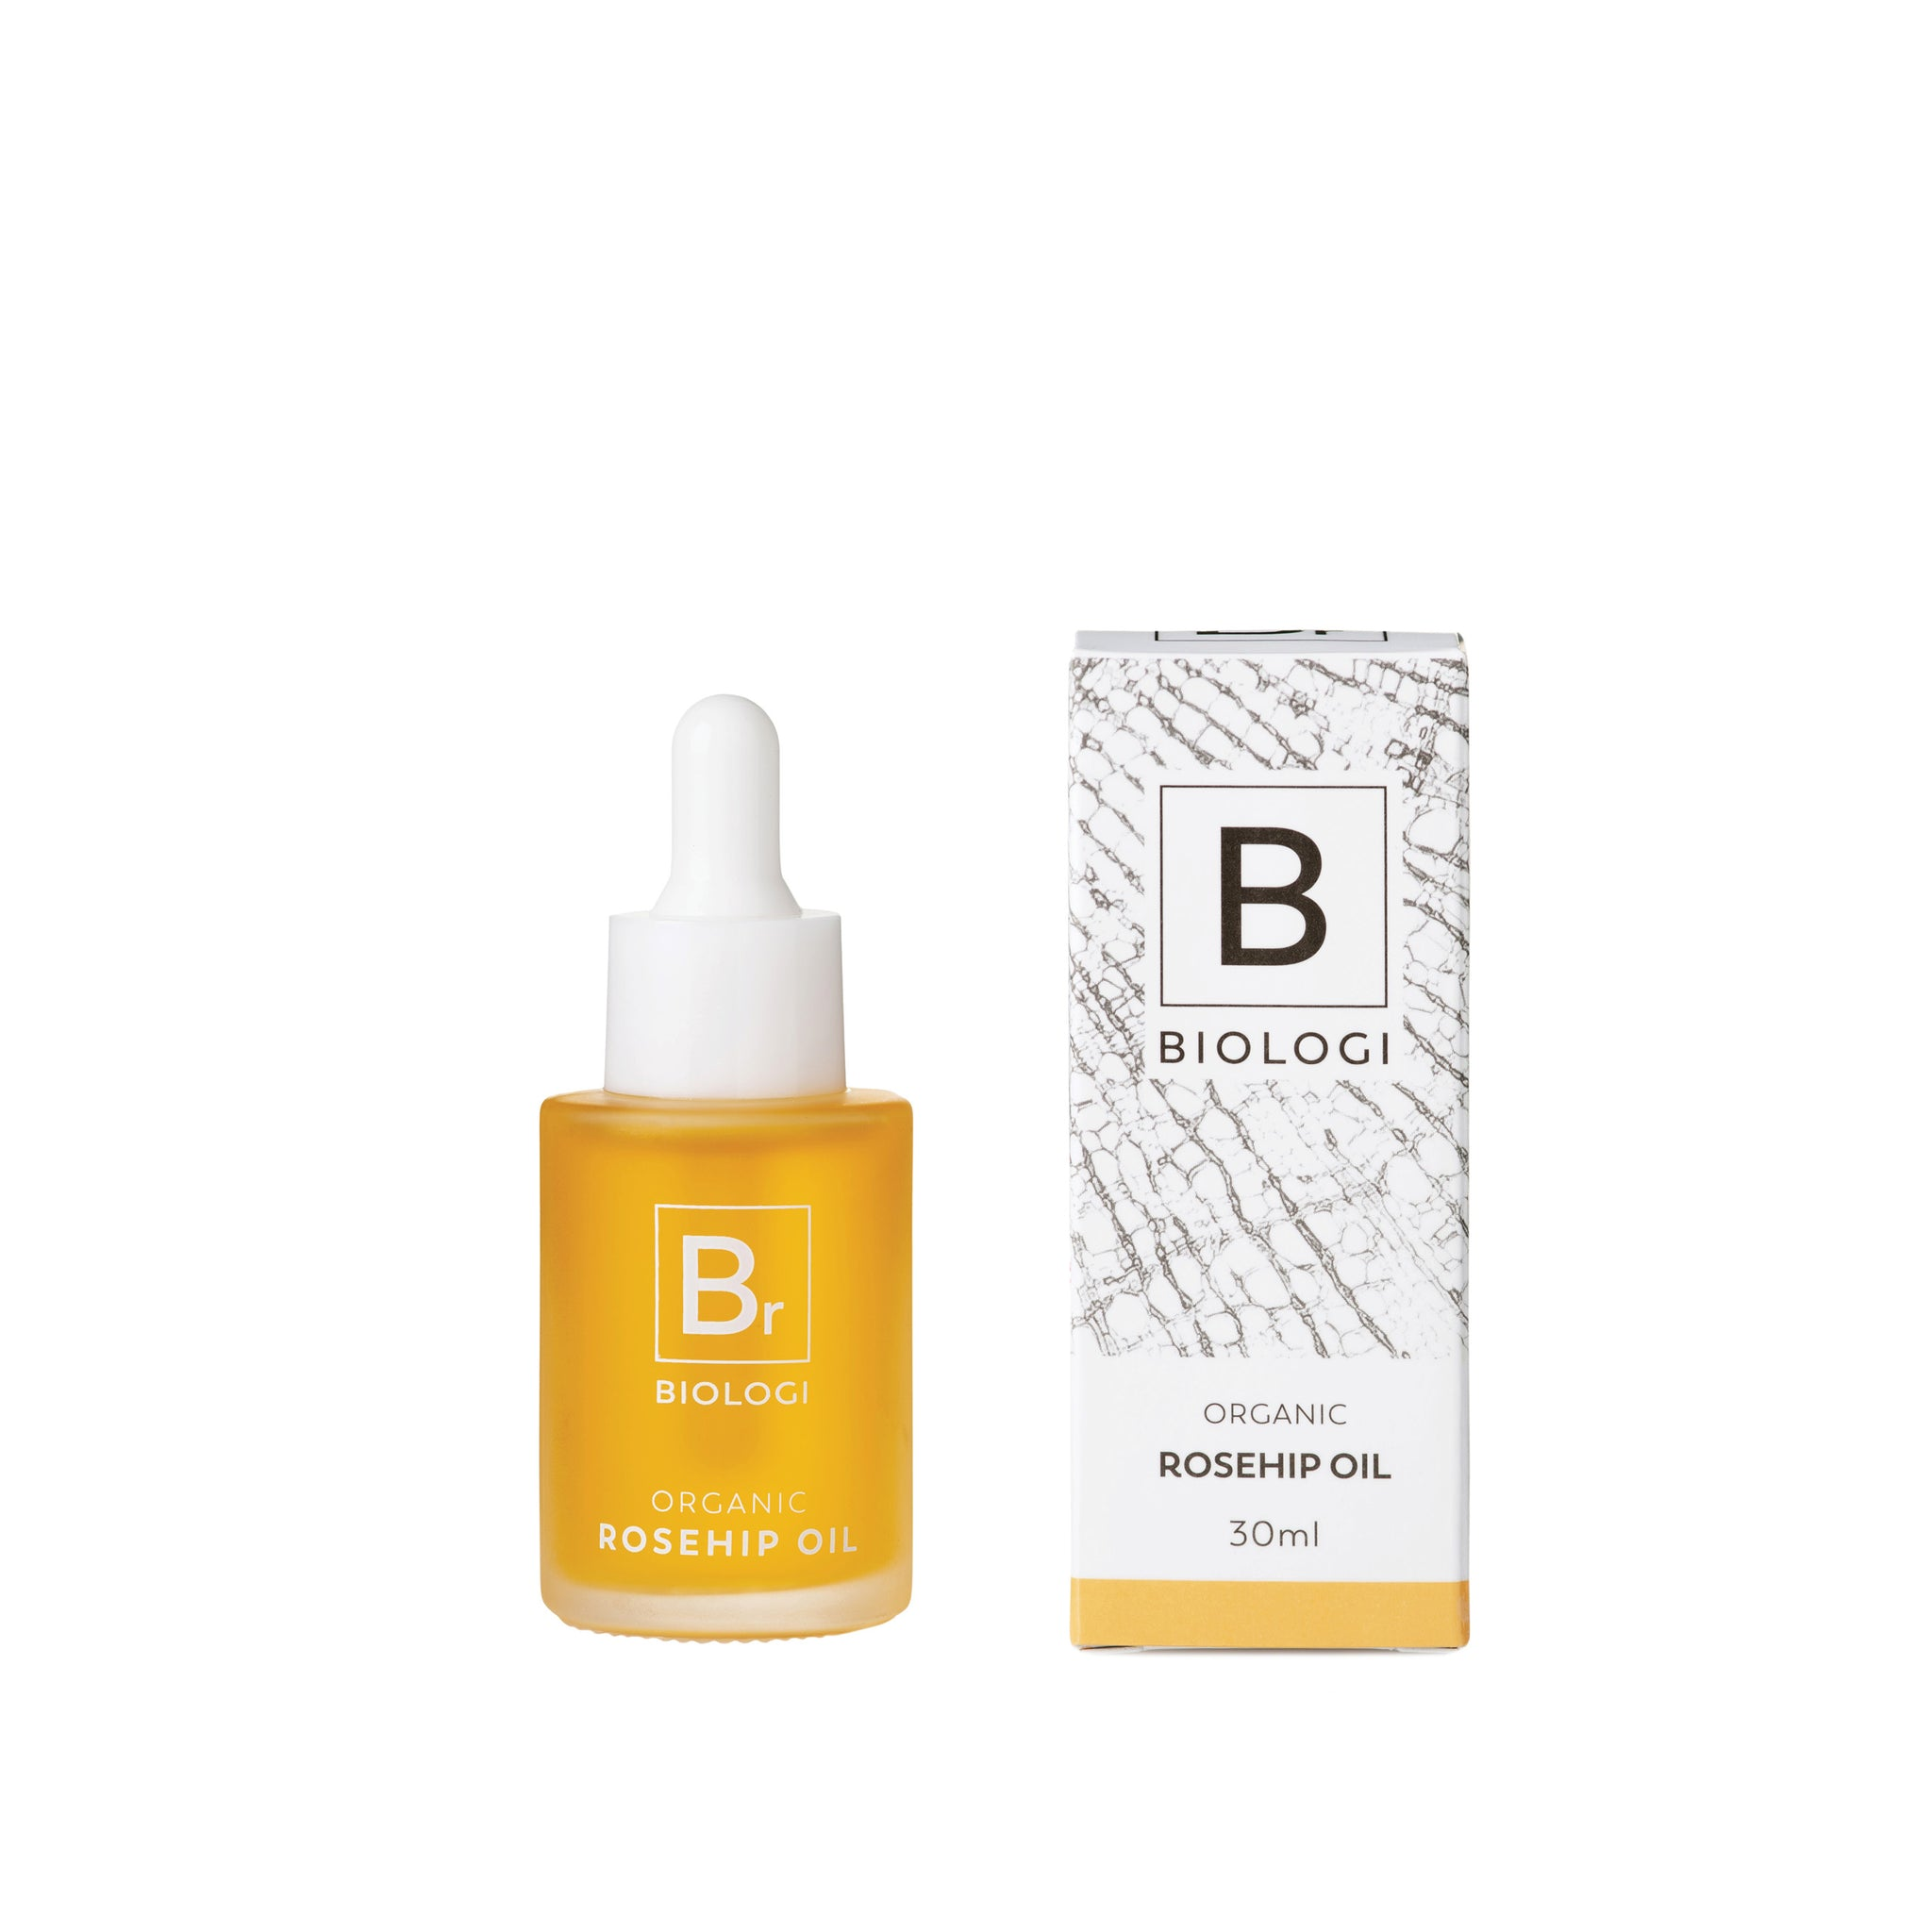 Br Organic Rosehip Oil - Br Organic Rosehip Oil has defined a new benchmark in skincare oils.  Harnessing the pure power of Rosa canina. Nourished x Biologi